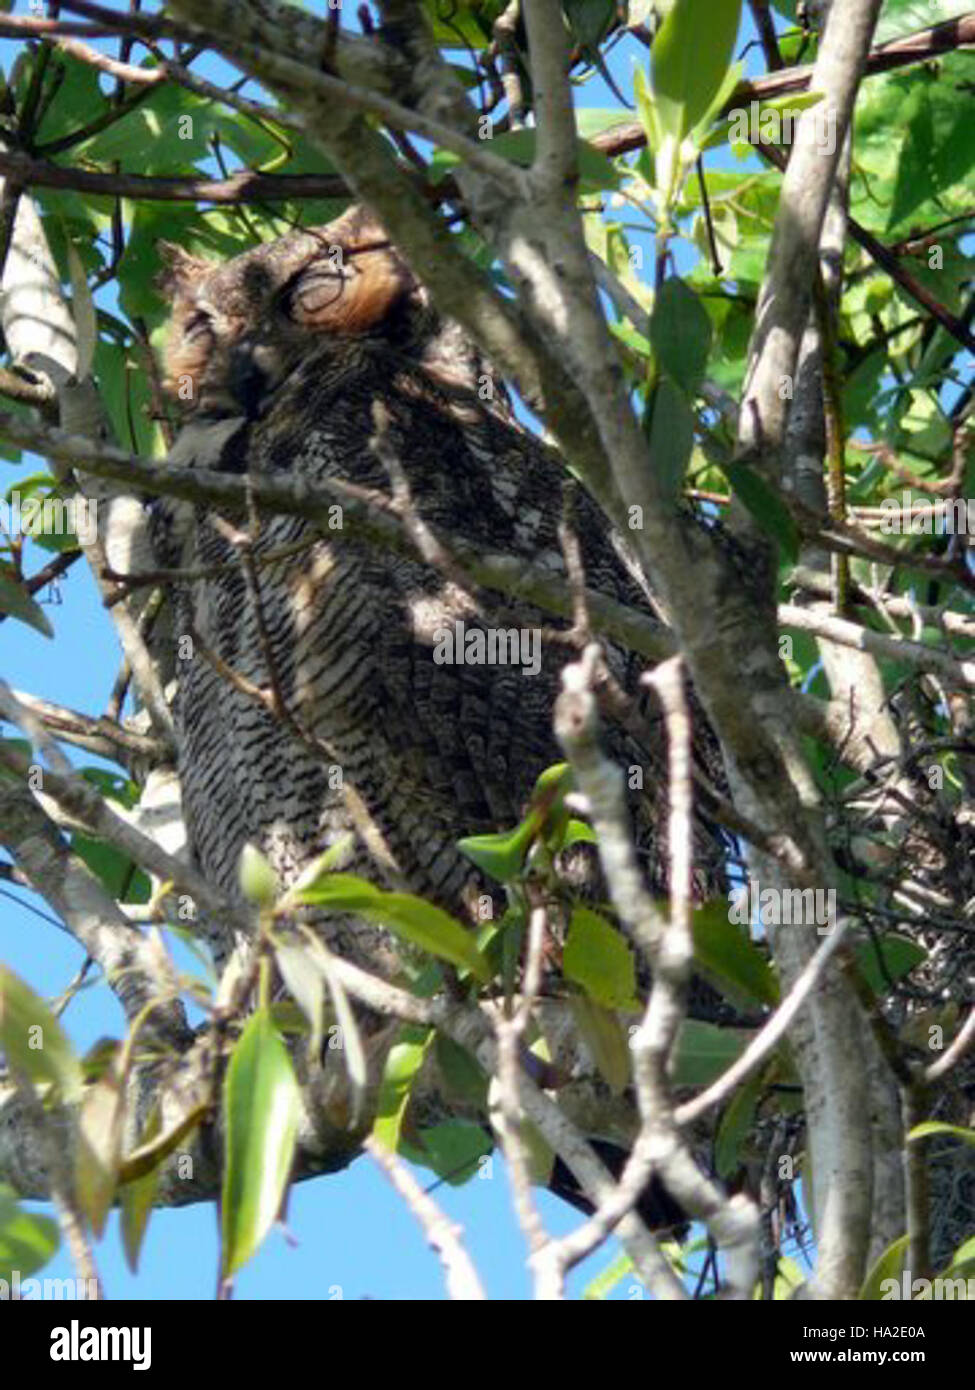 everglades Great Horned Owl- Sleeping Stock Photo